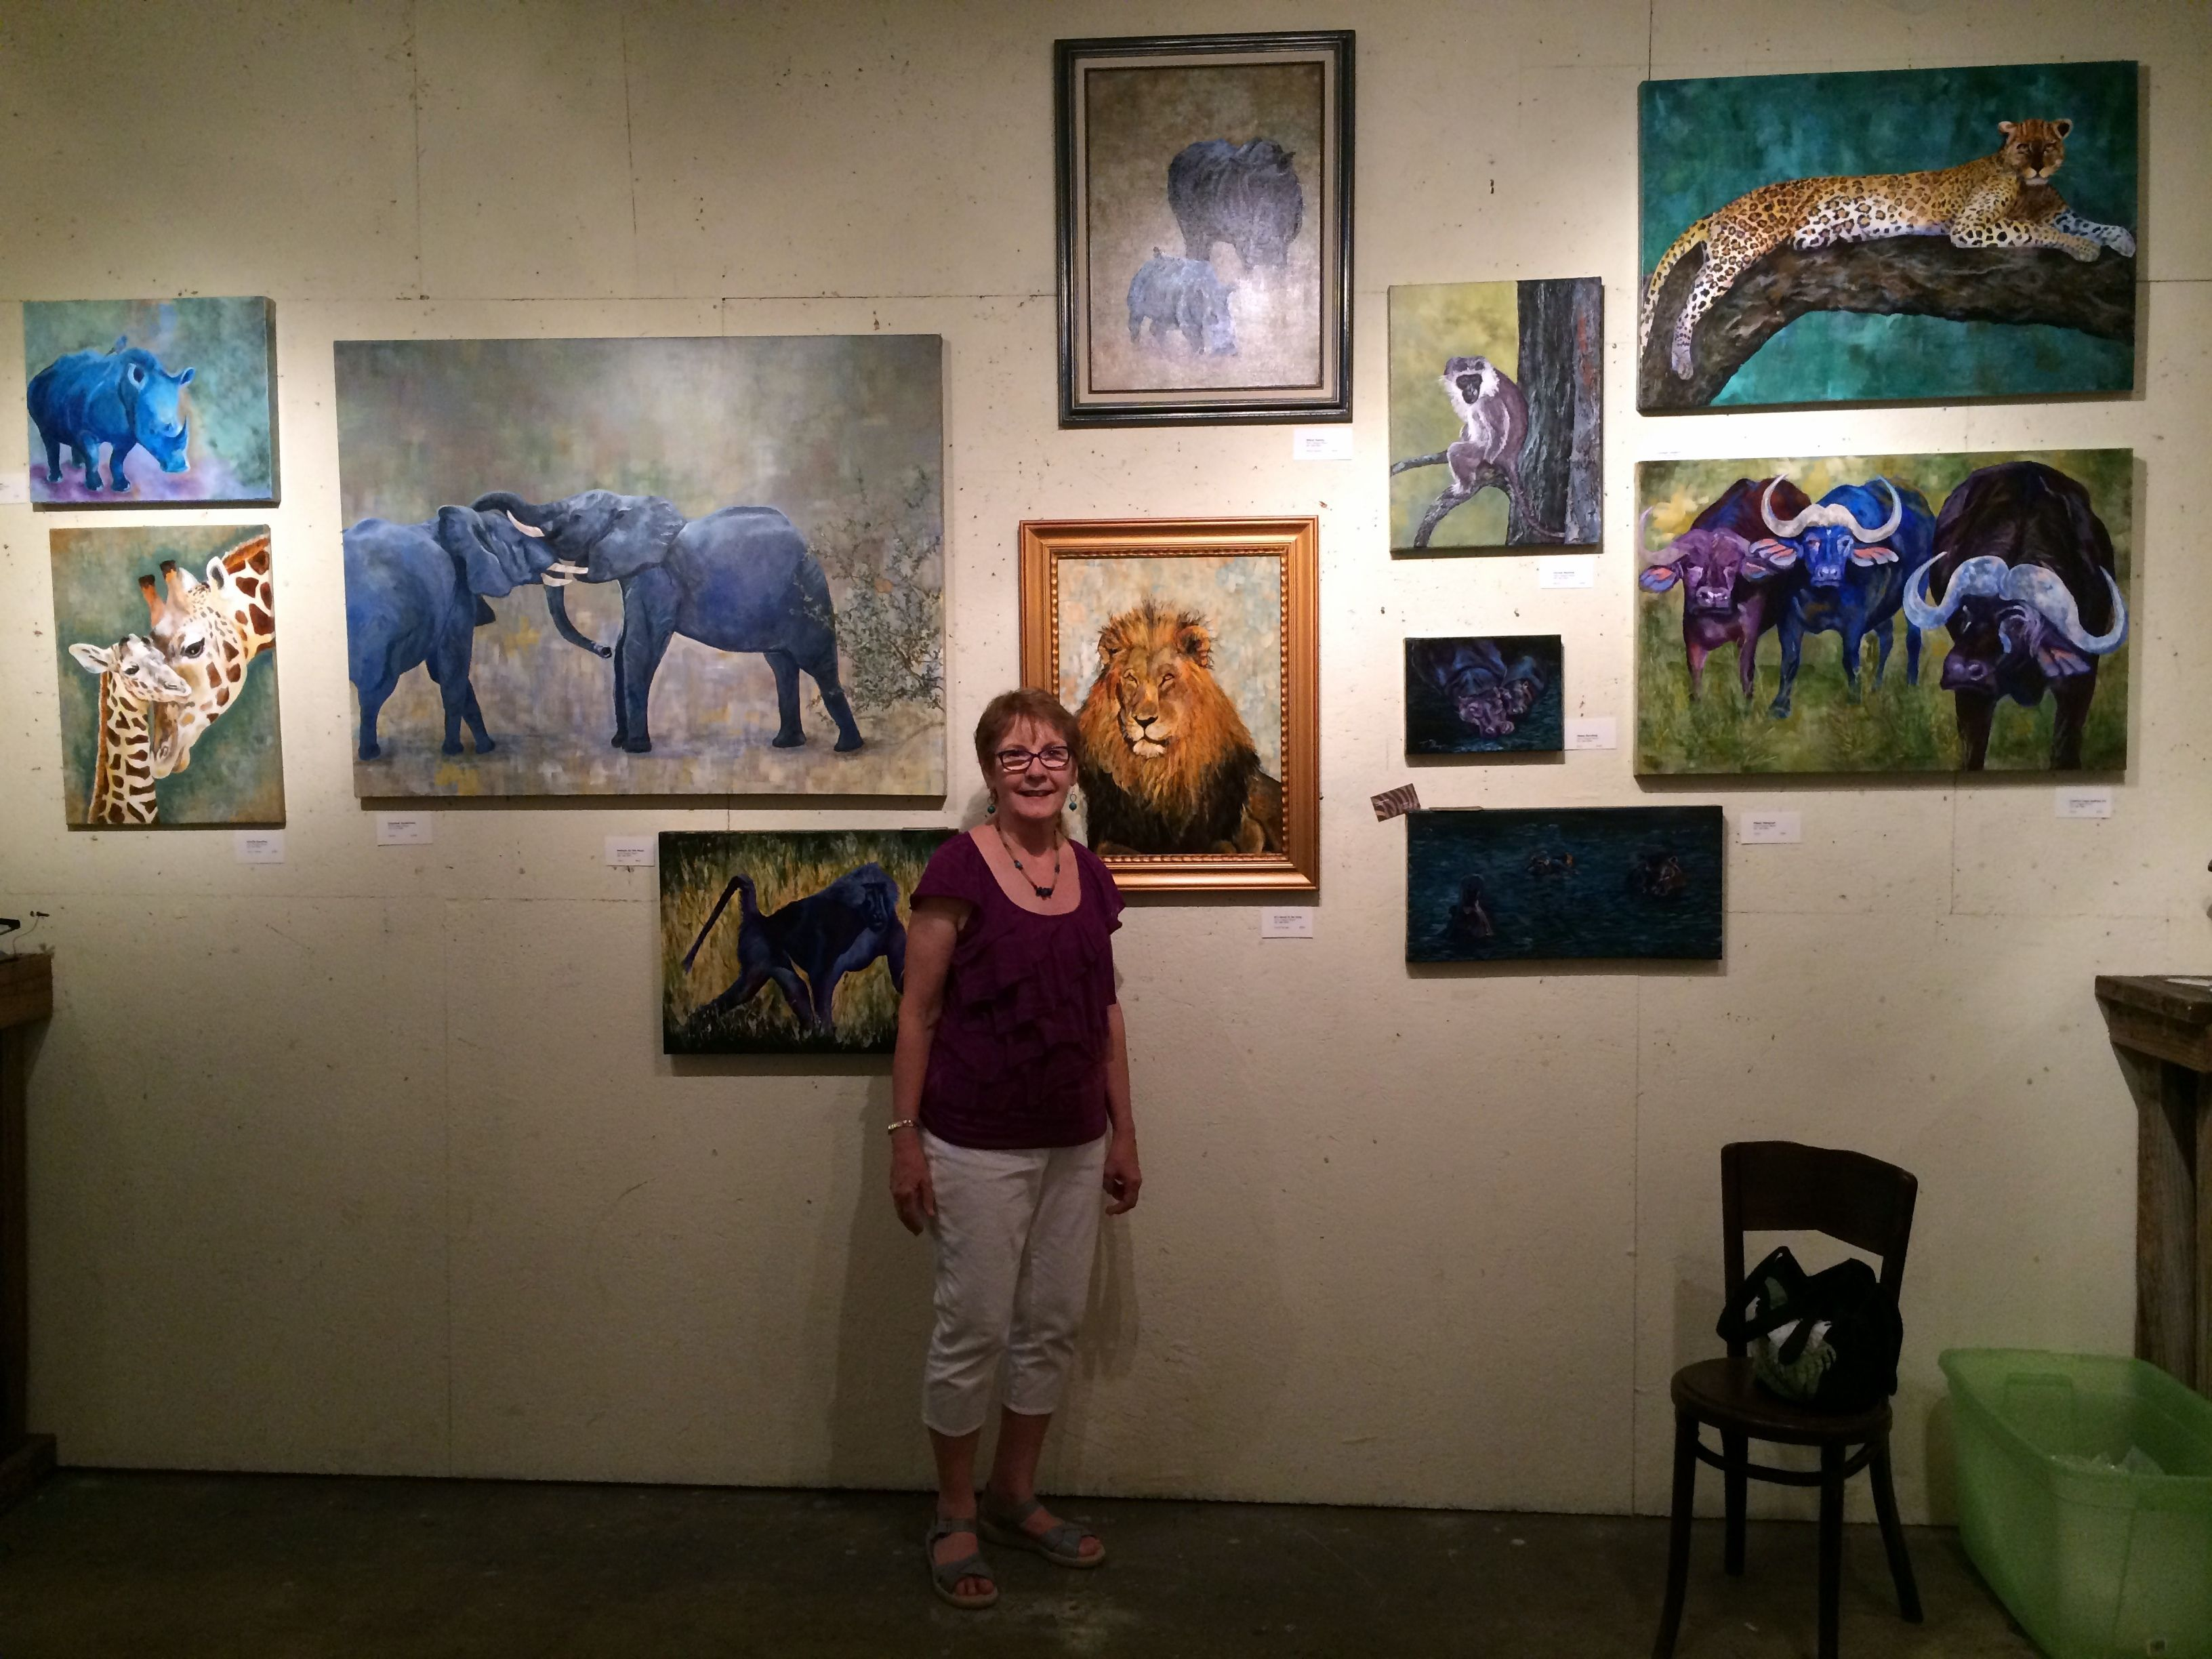 Watercolor art galleries in houston - Terry M Displays Her Collection Of Animal Art She Takes Weekly Art Classes From Ginger At Jerry S Artarama In Houston Texas